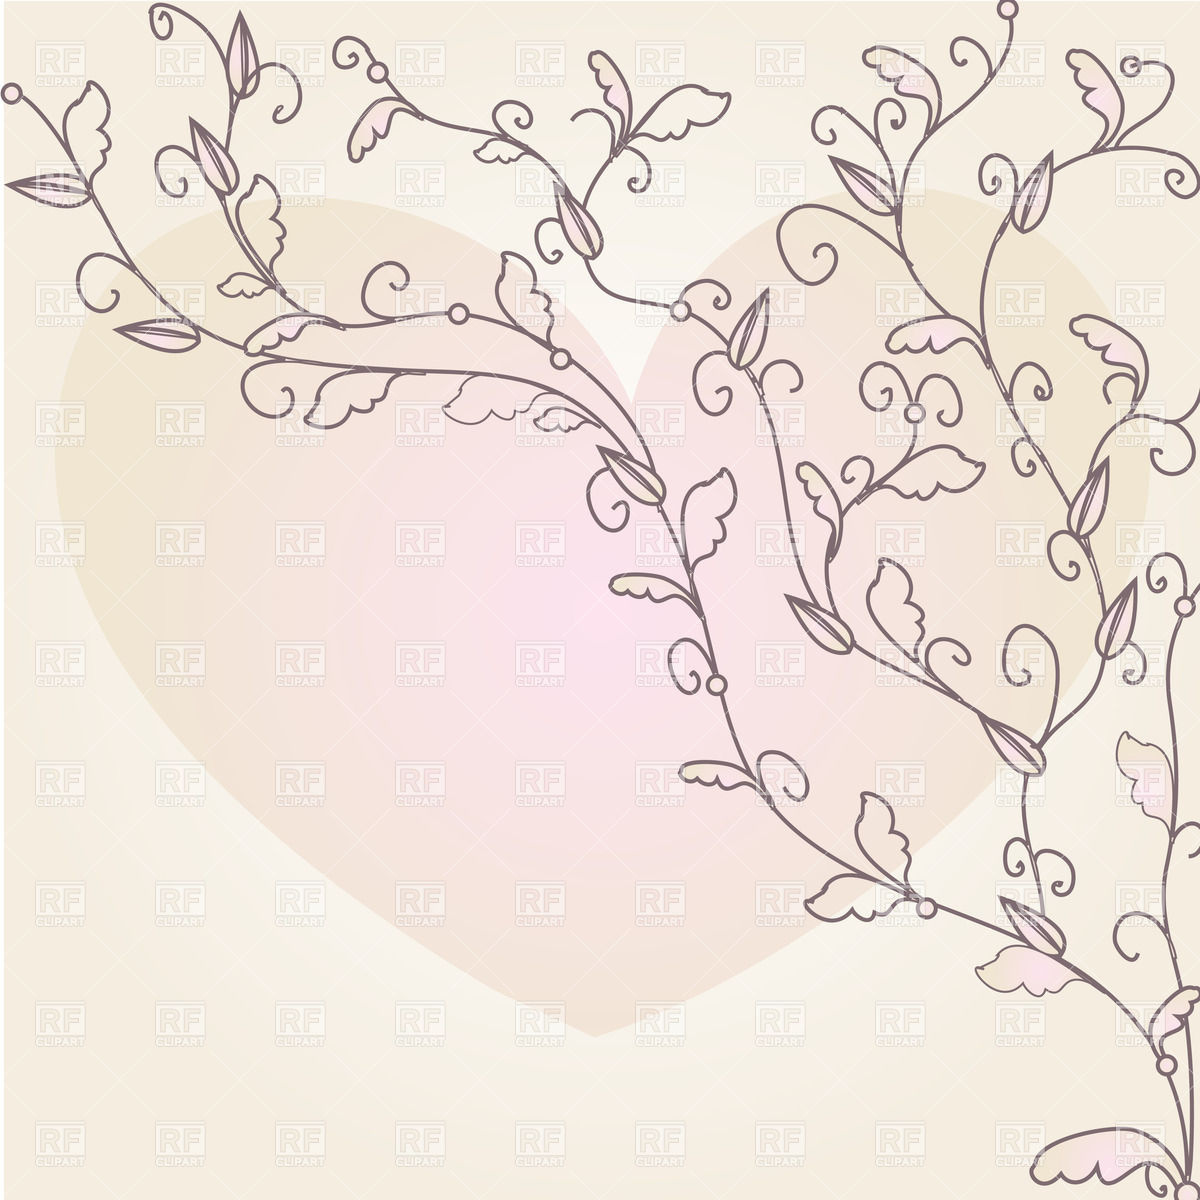 Pastel leaves background clipart graphic royalty free download Wavy twigs with leaves and heart on pastel background Vector Image ... graphic royalty free download